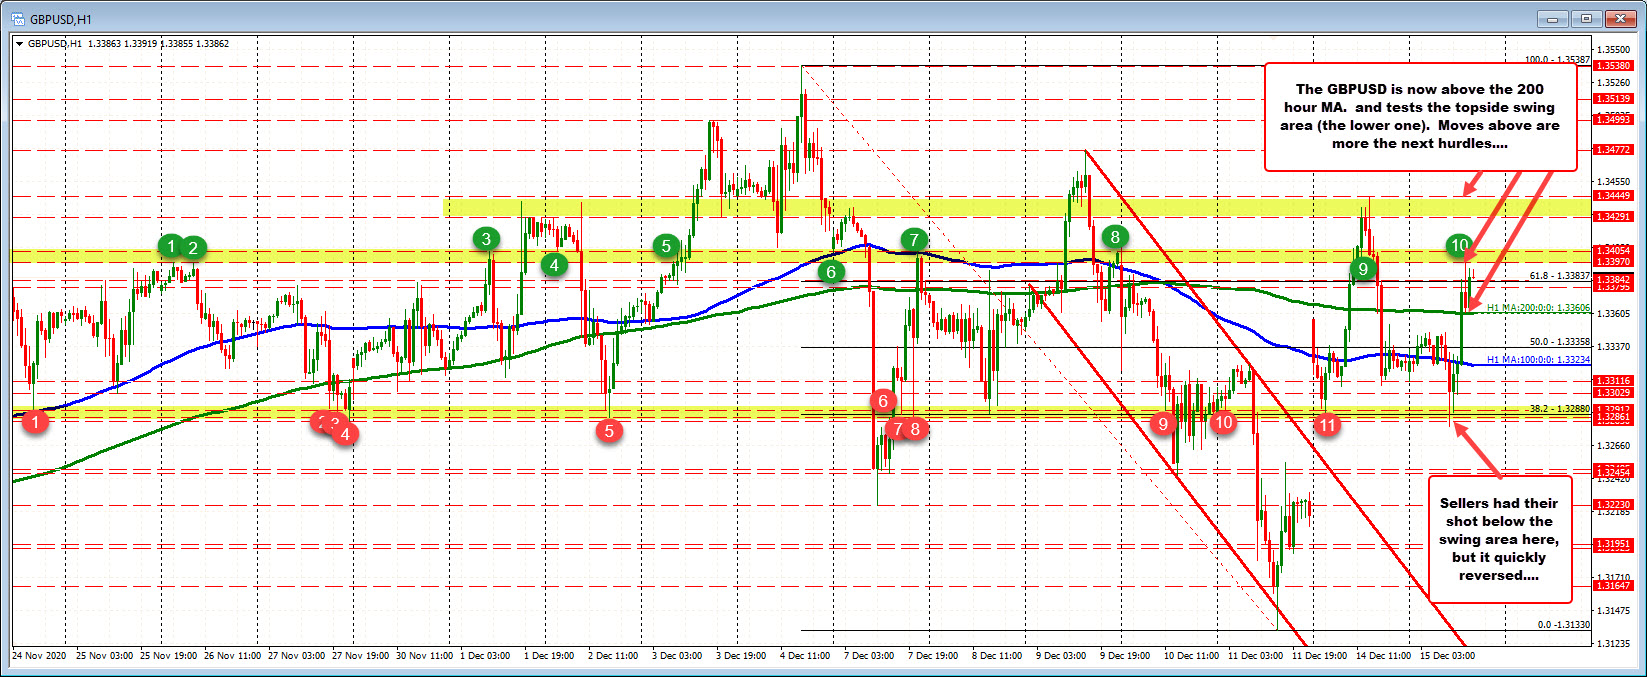 Photo of GBPUSD returns higher and above 200 hours MA